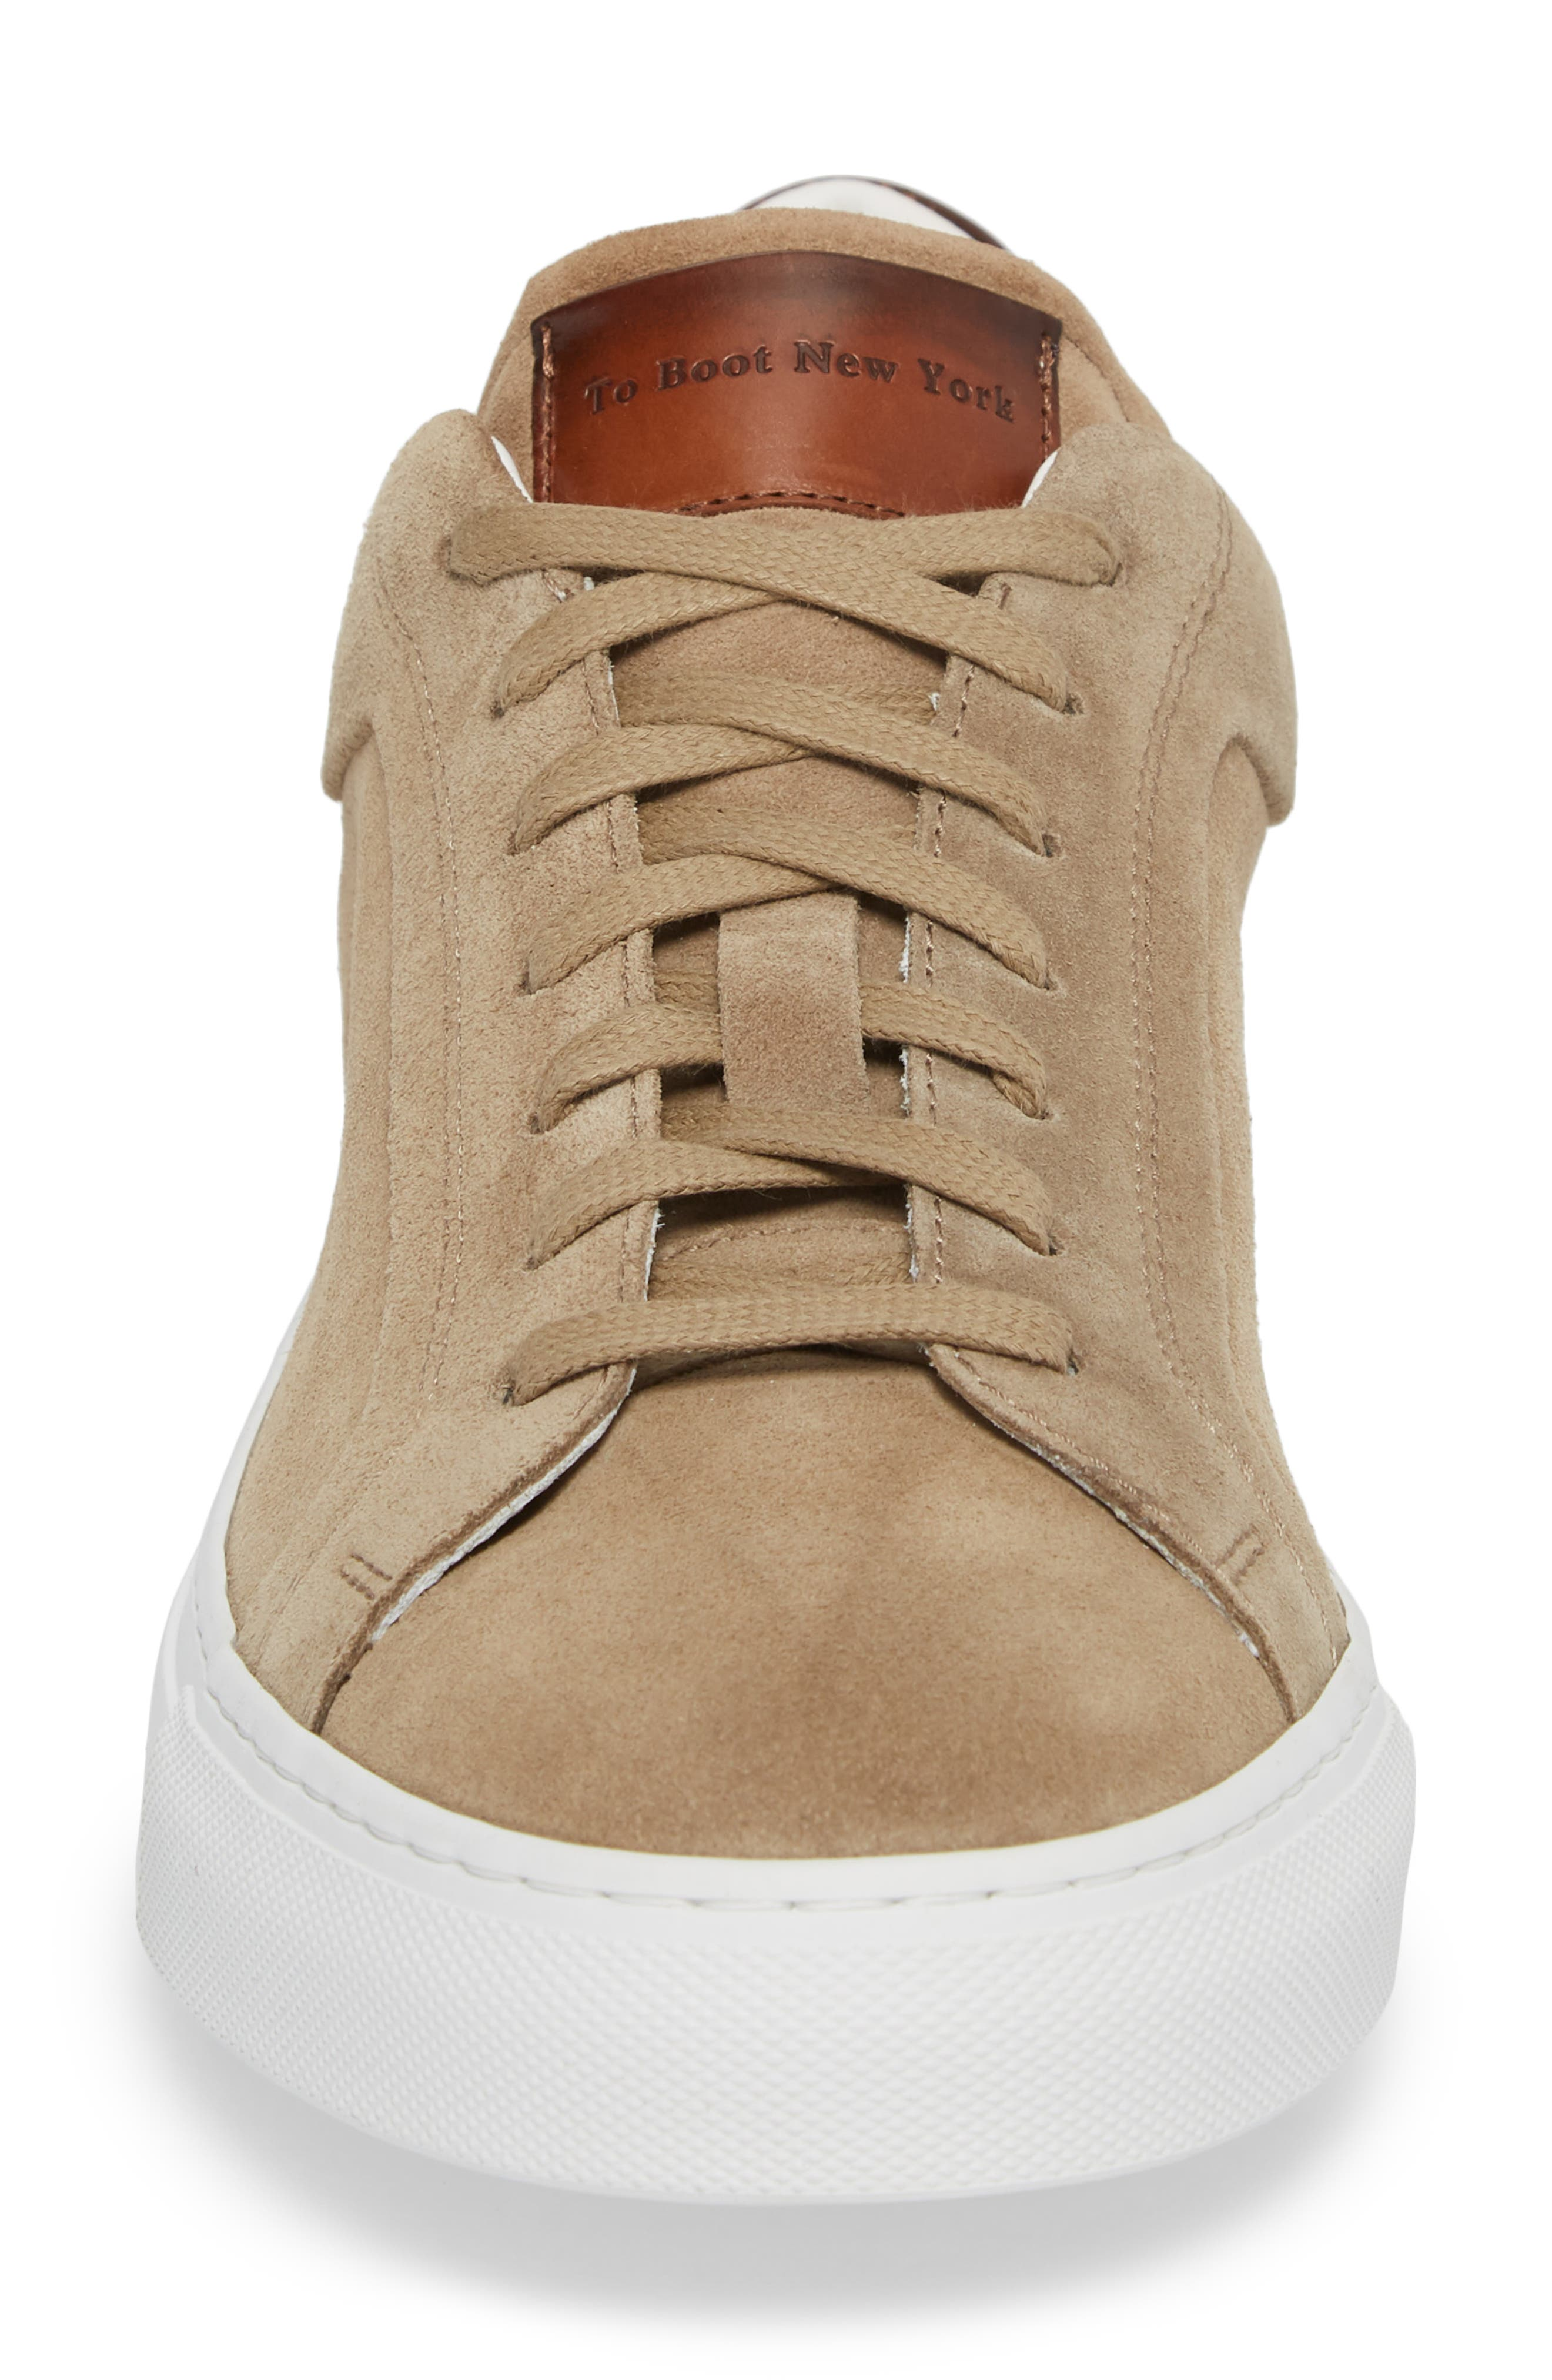 Britt Low Top Sneaker,                             Alternate thumbnail 4, color,                             Tan Suede